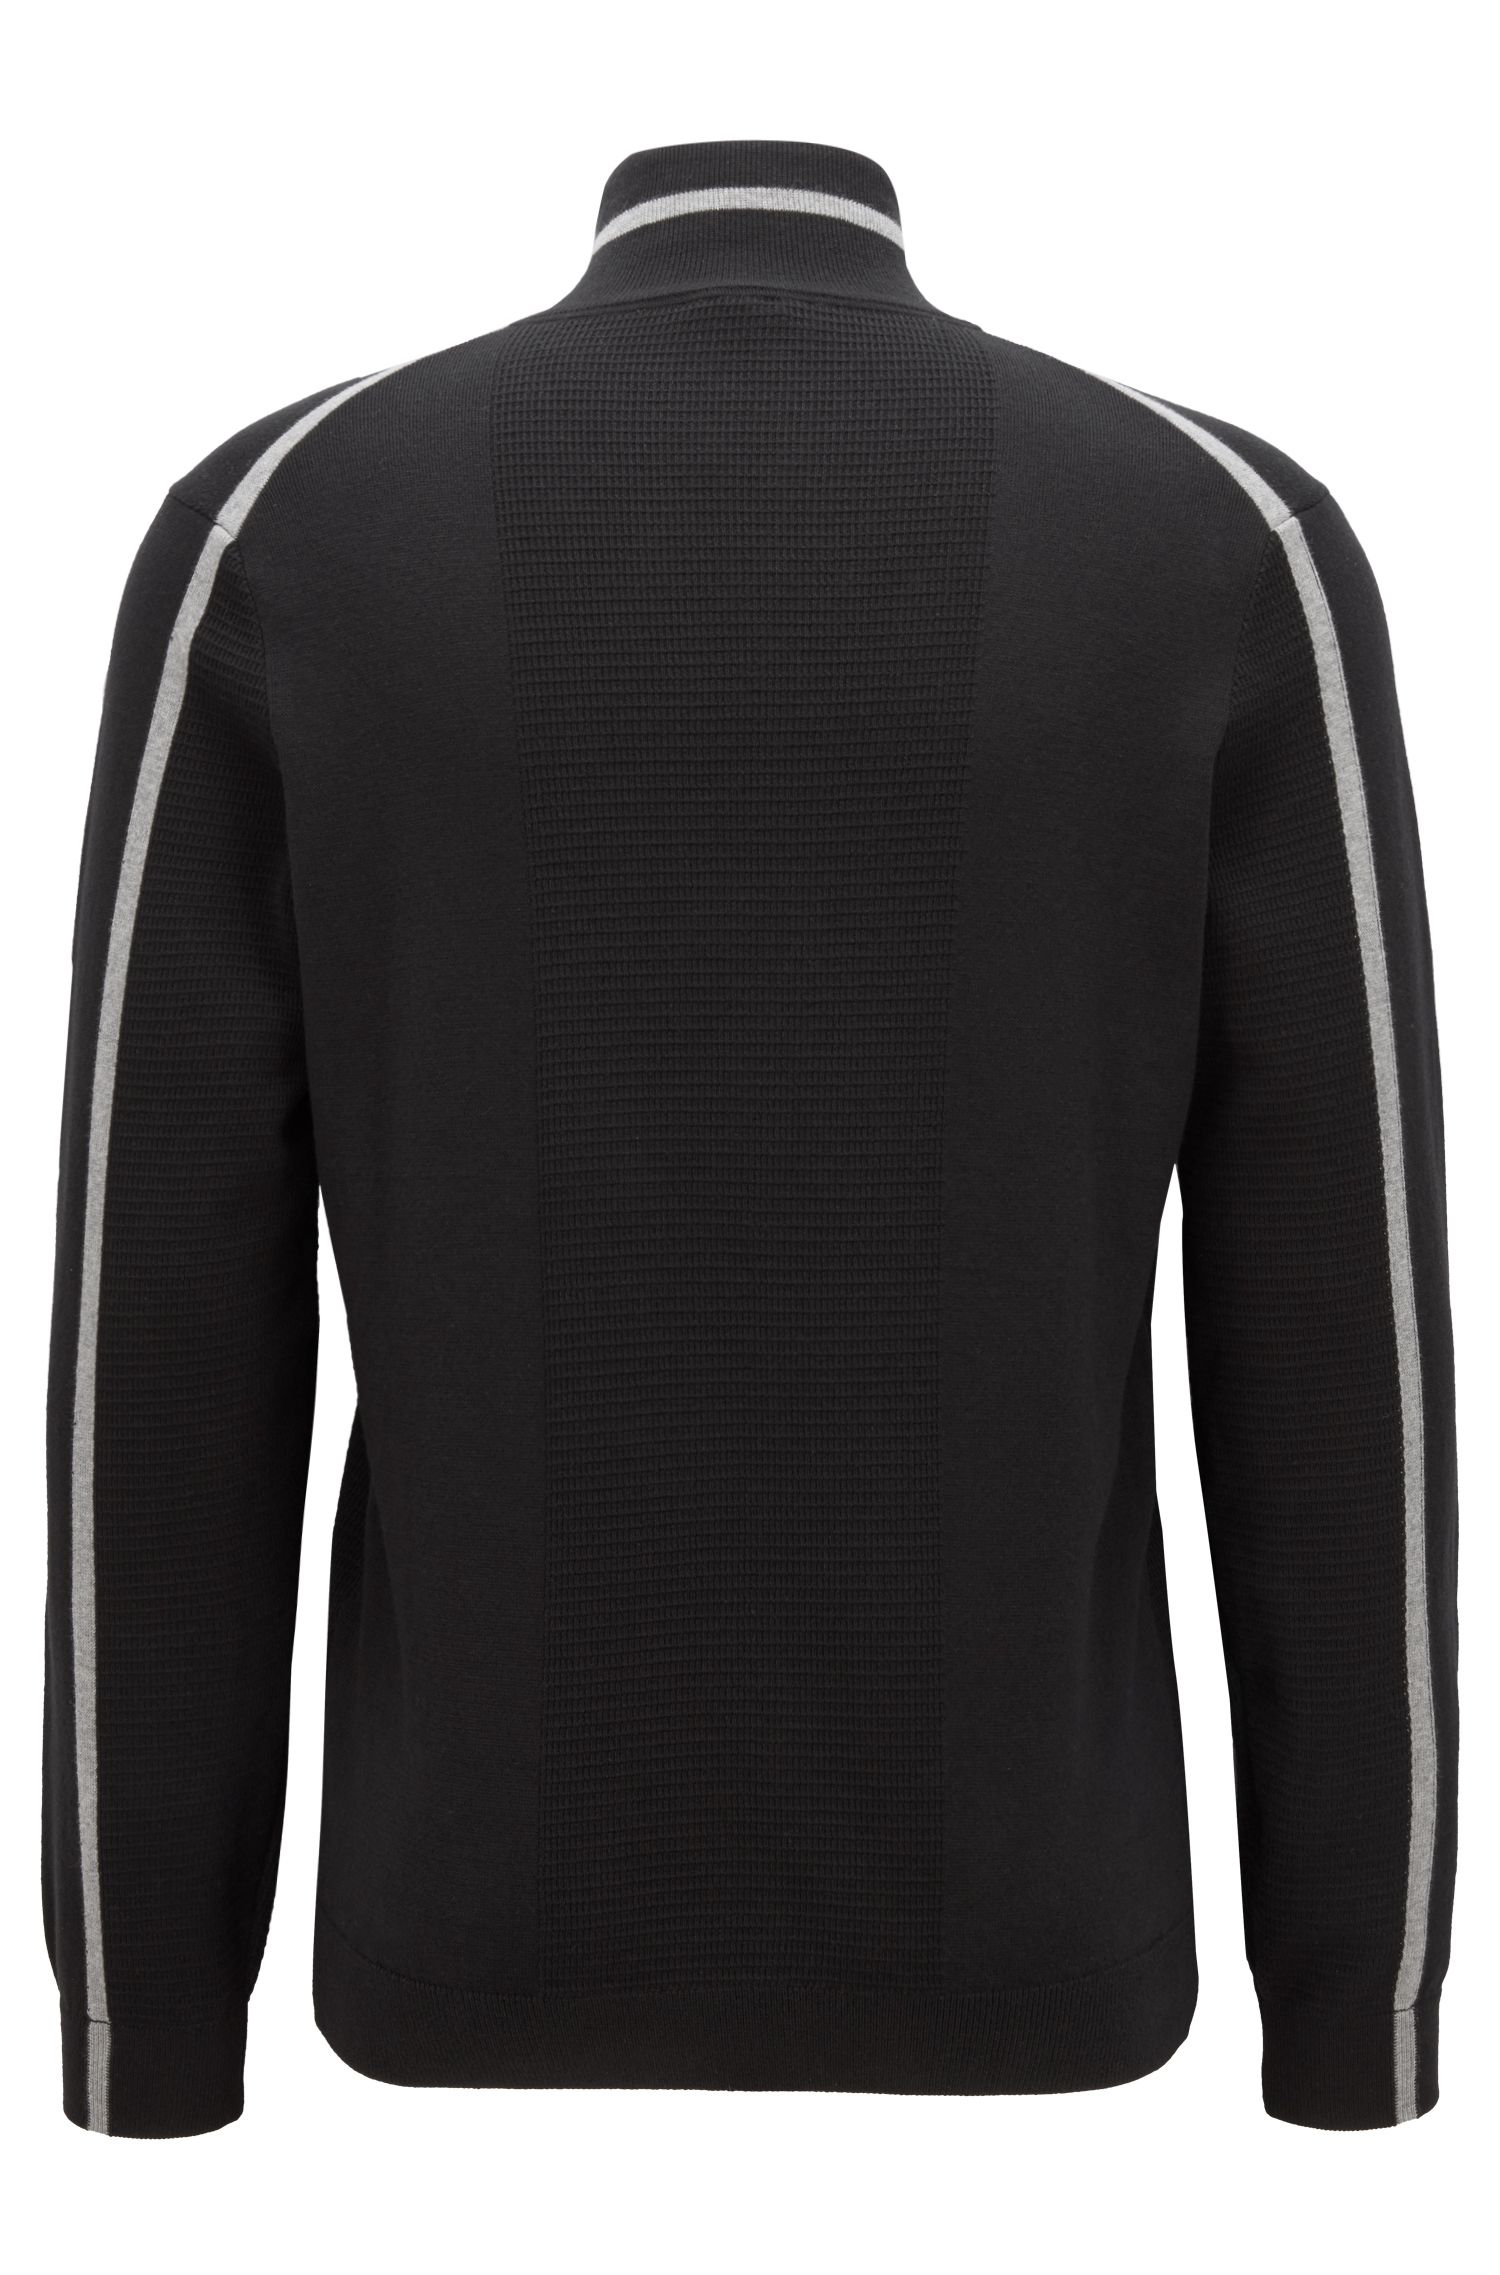 Zipper-neck sweater in an organic-cotton blend, Black